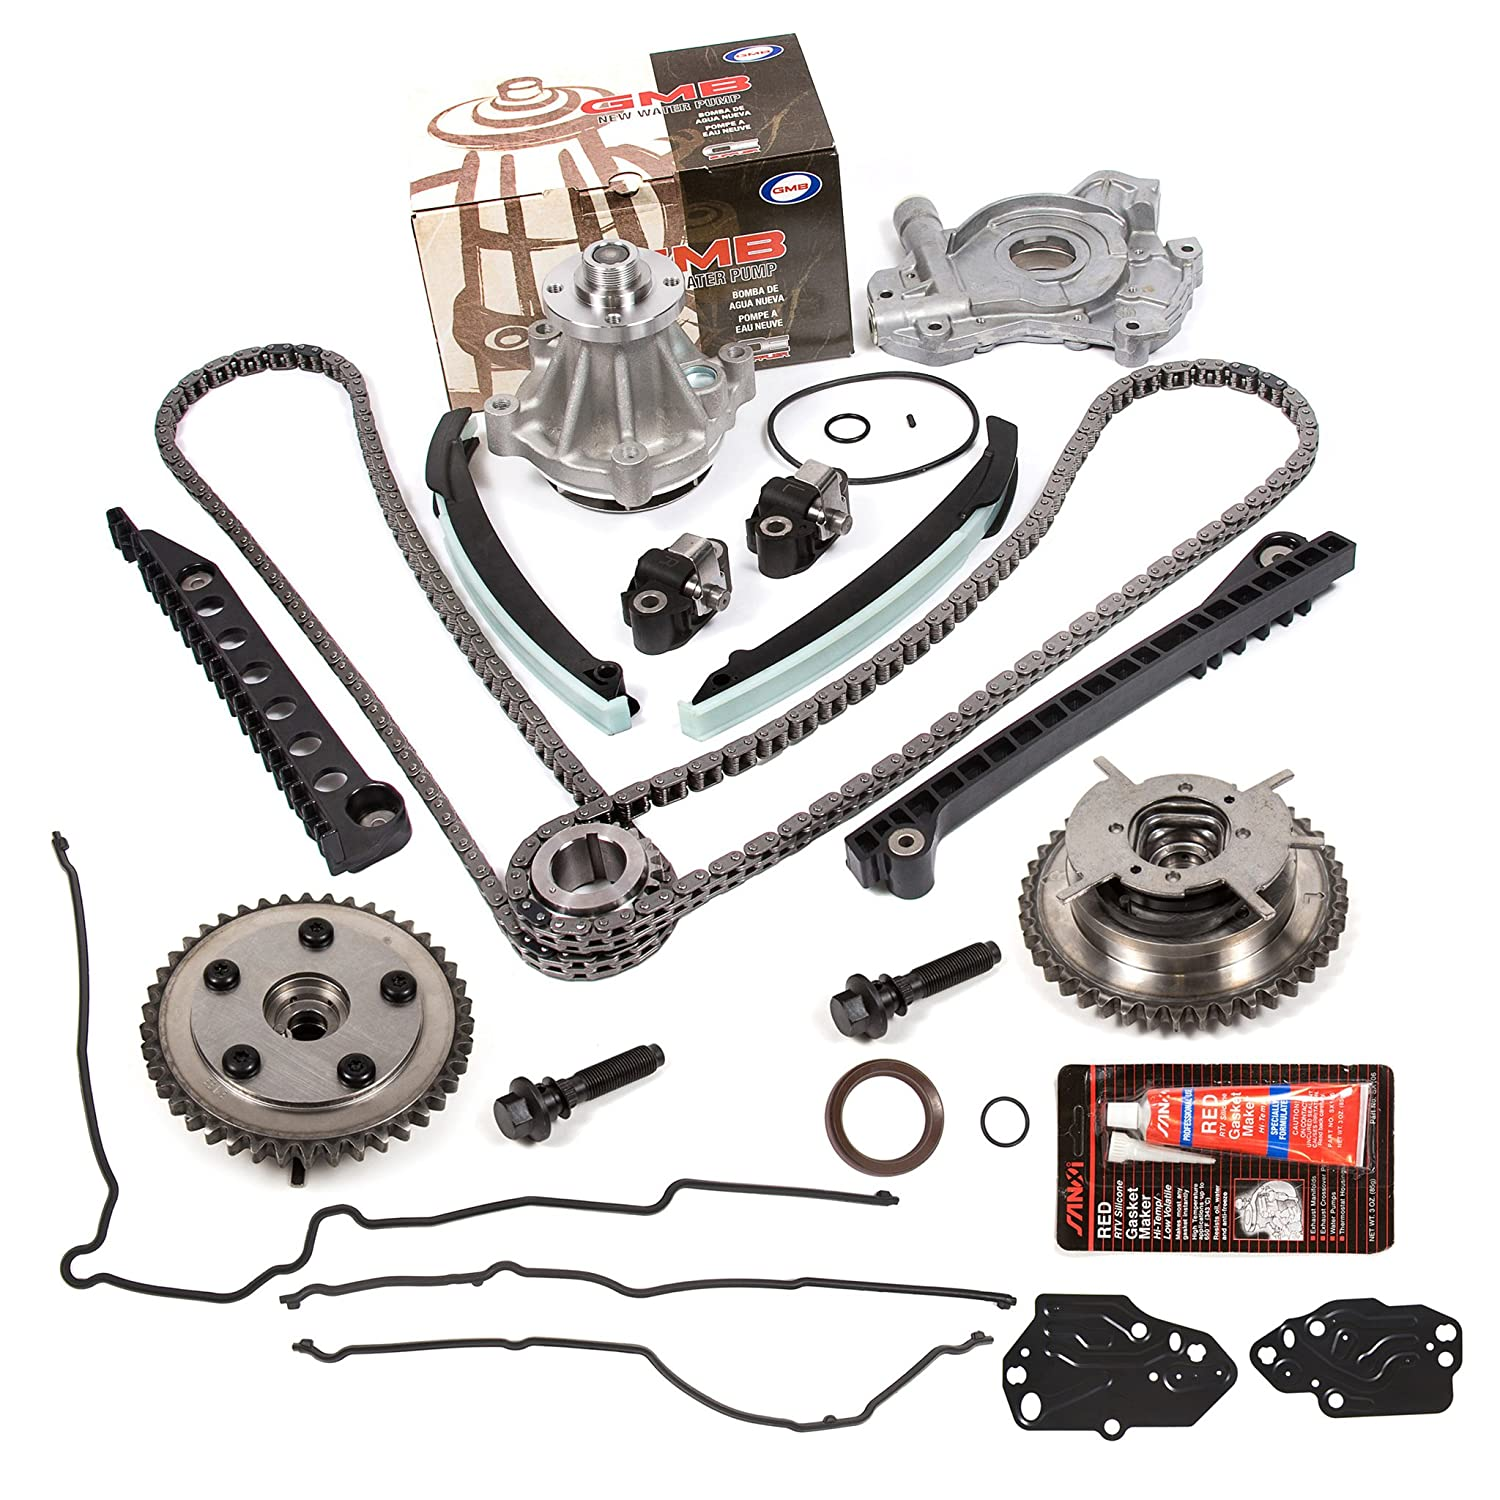 Evergreen Tktcs6068gwop 04 08 Ford F150 F250 Lincoln 83 2 3 Timing Marks App Navigator Triton 54 Sohc Valve Chain Kit Cam Phaser Water Pump Oil